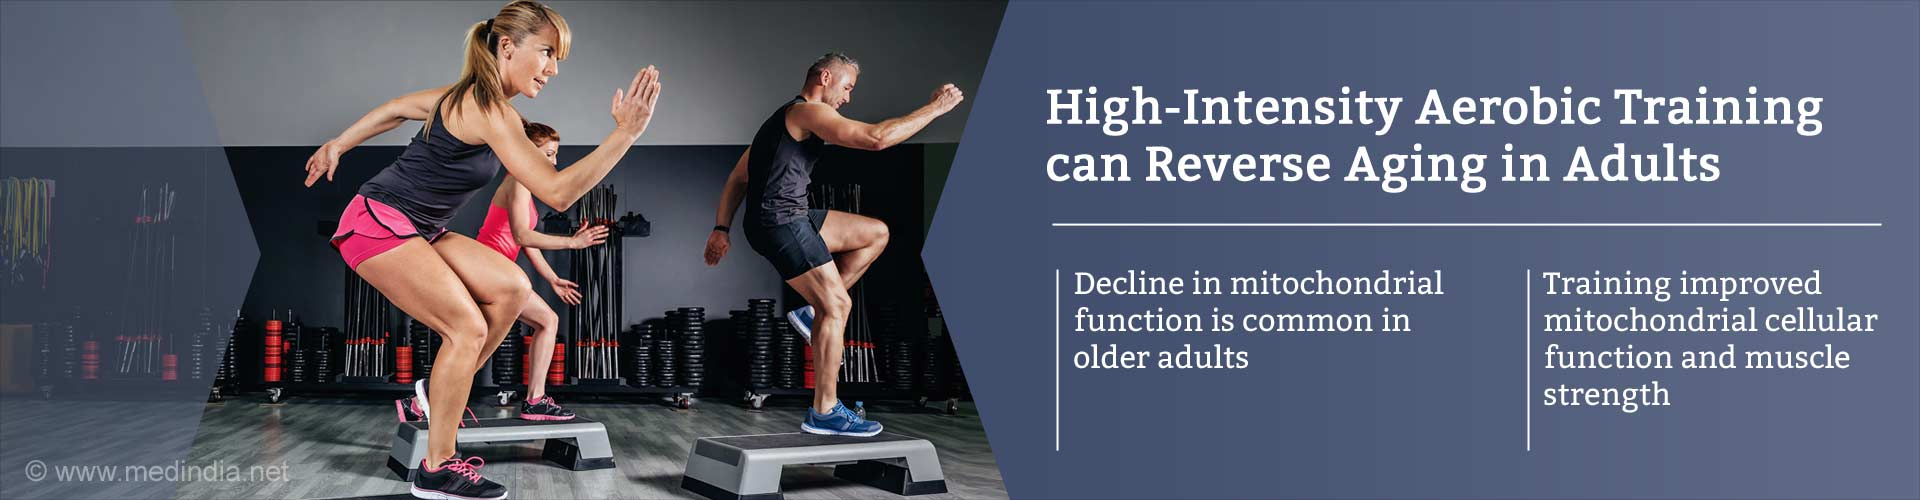 high-intensity aerobic training can reverse aging in adults - decline in mitochondrial function is common in older adults - training improved mitochondrial cellular mitochondrial cellular function and muscle strength